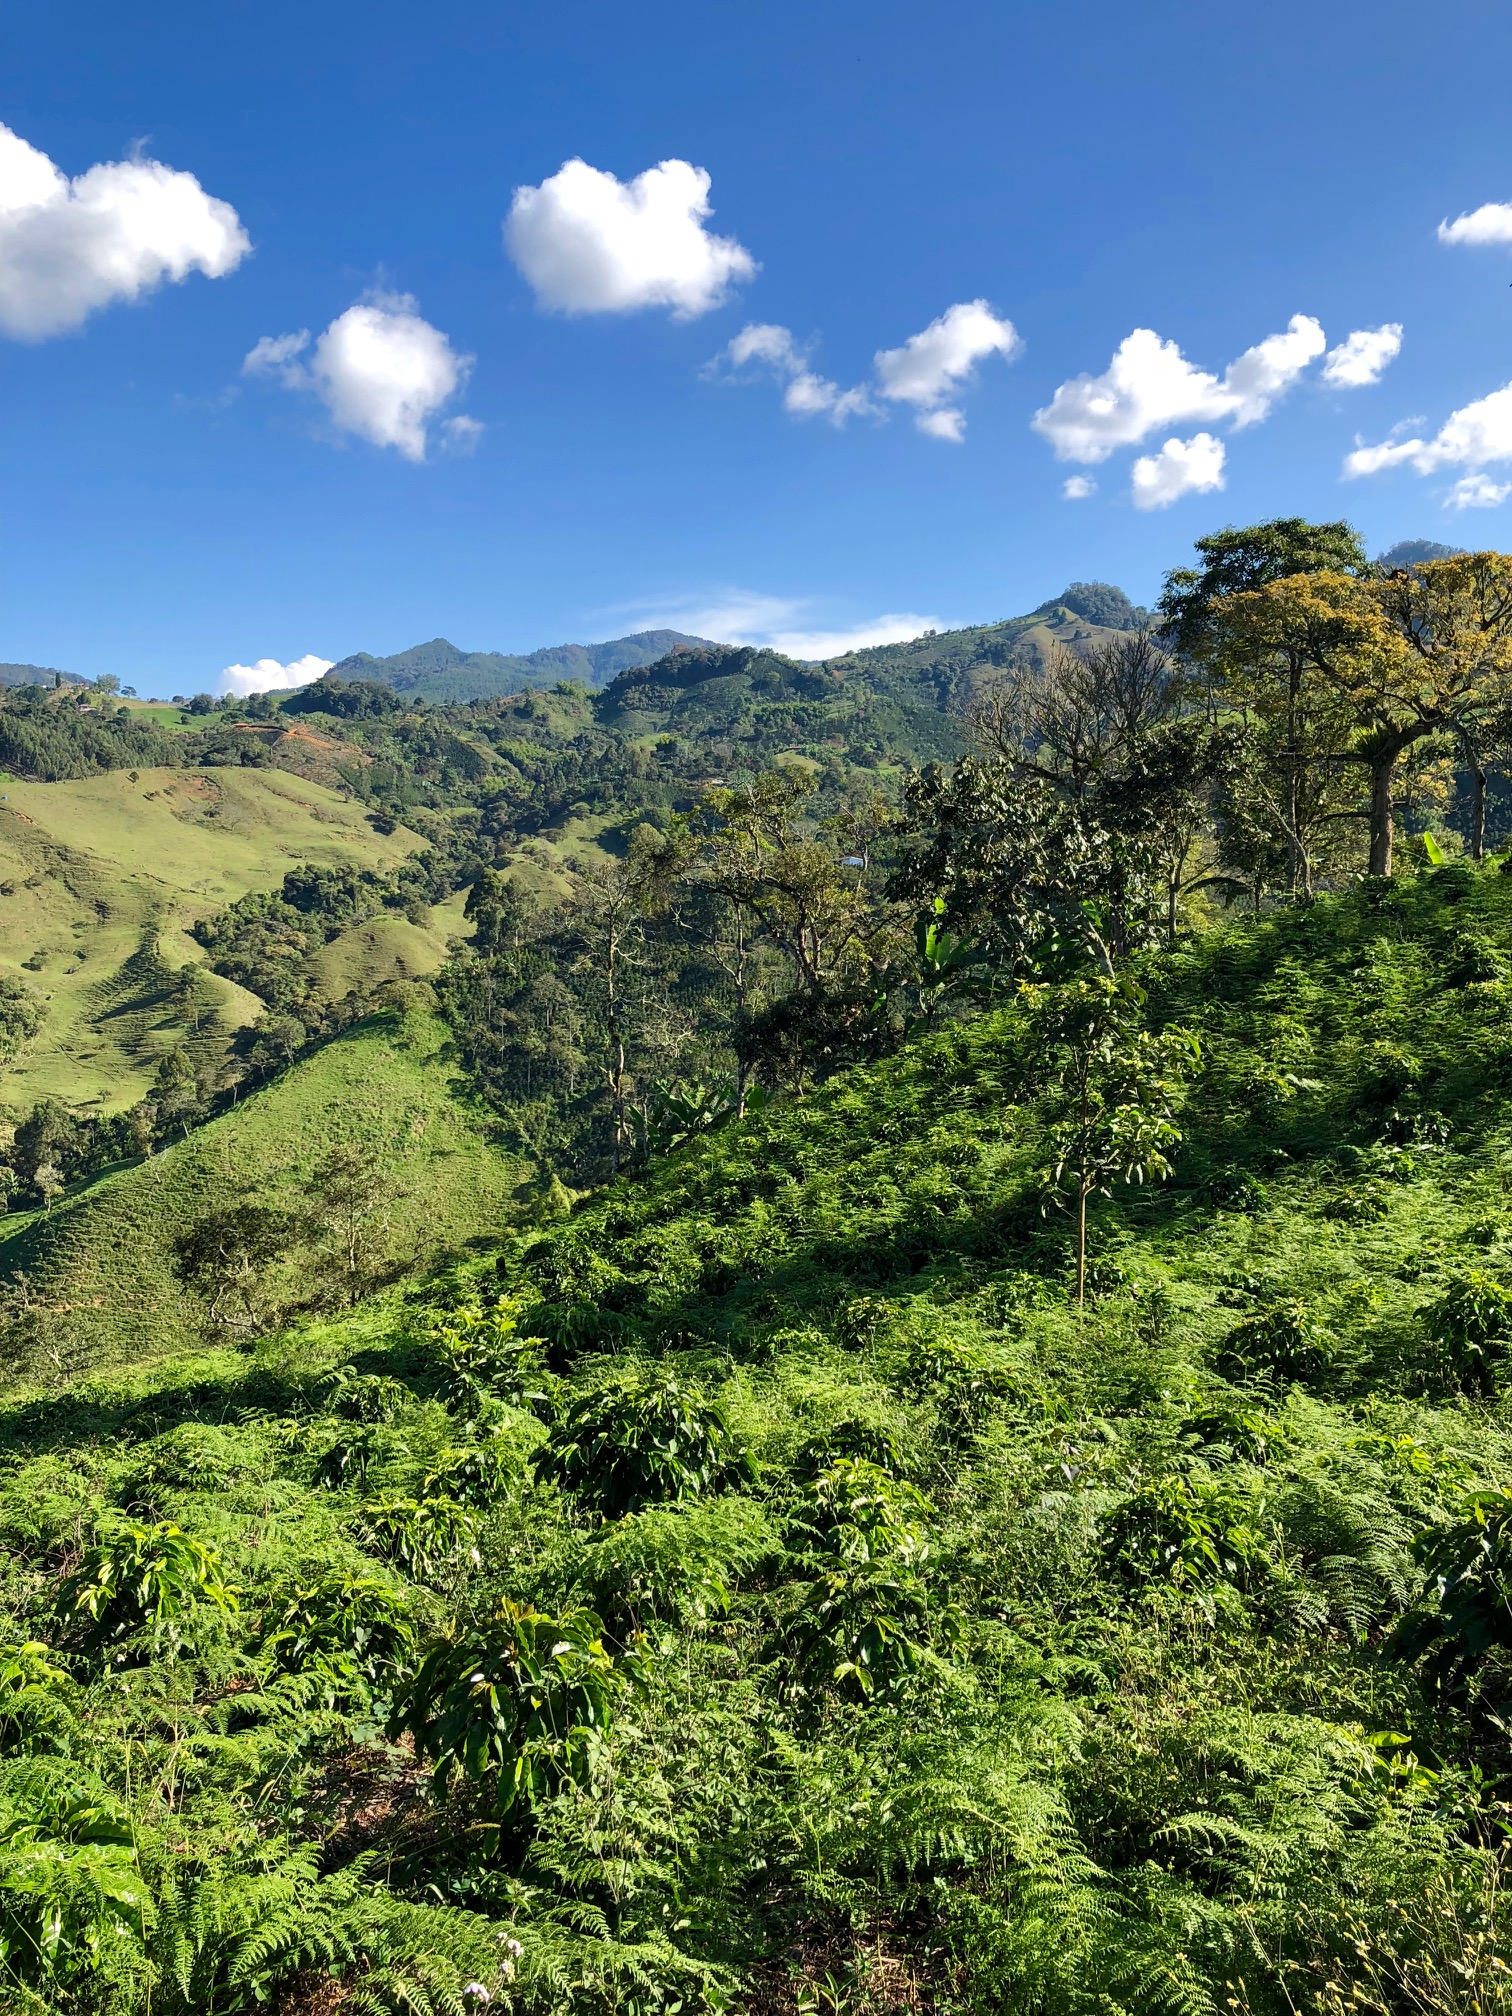 View over magnificent coffee country, Colombia 2019 (SMT.com)